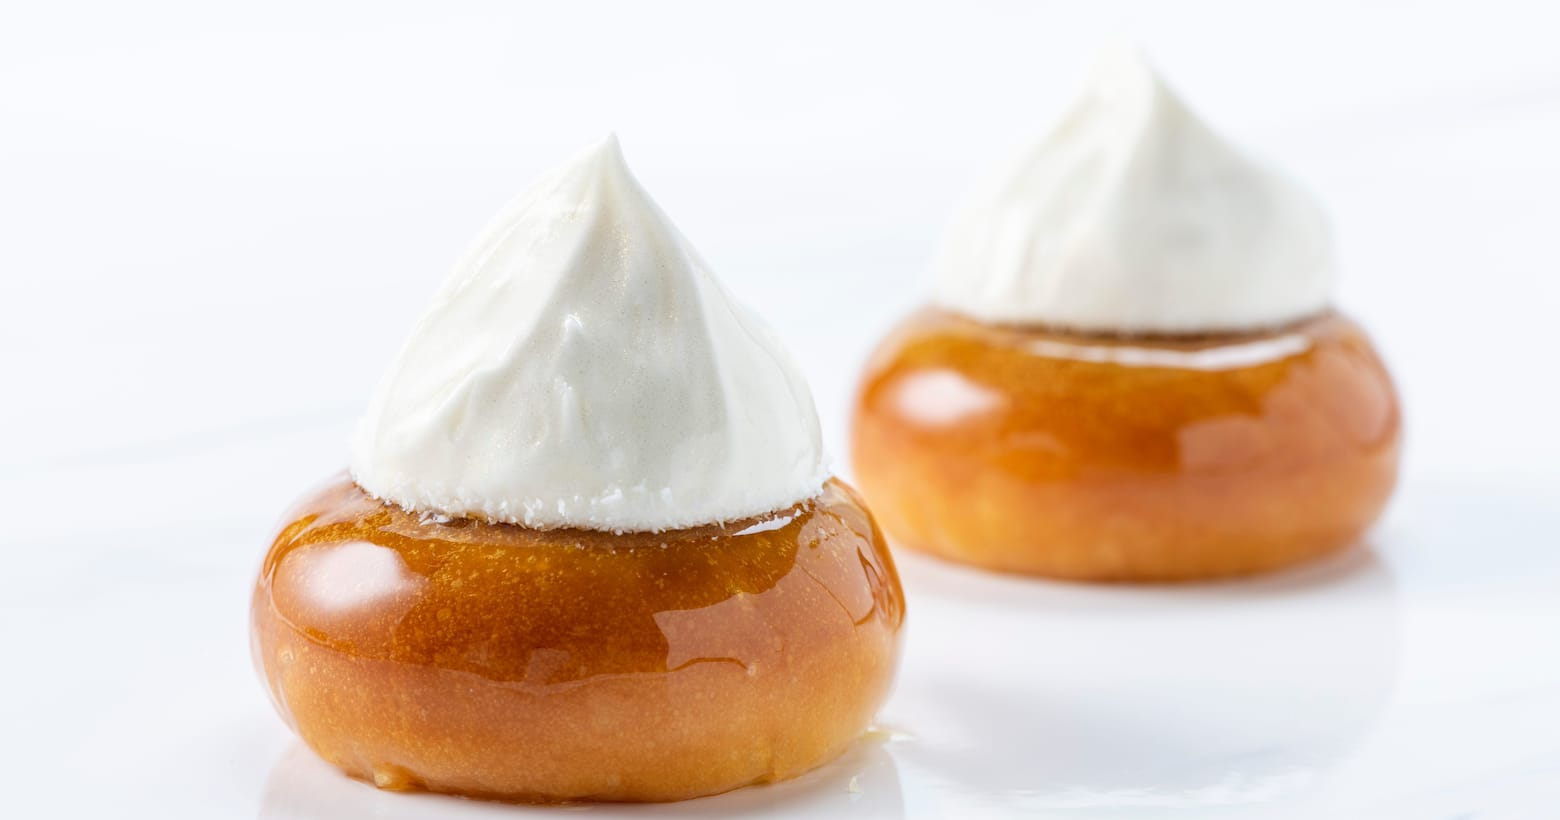 baked pastries with whipped cream